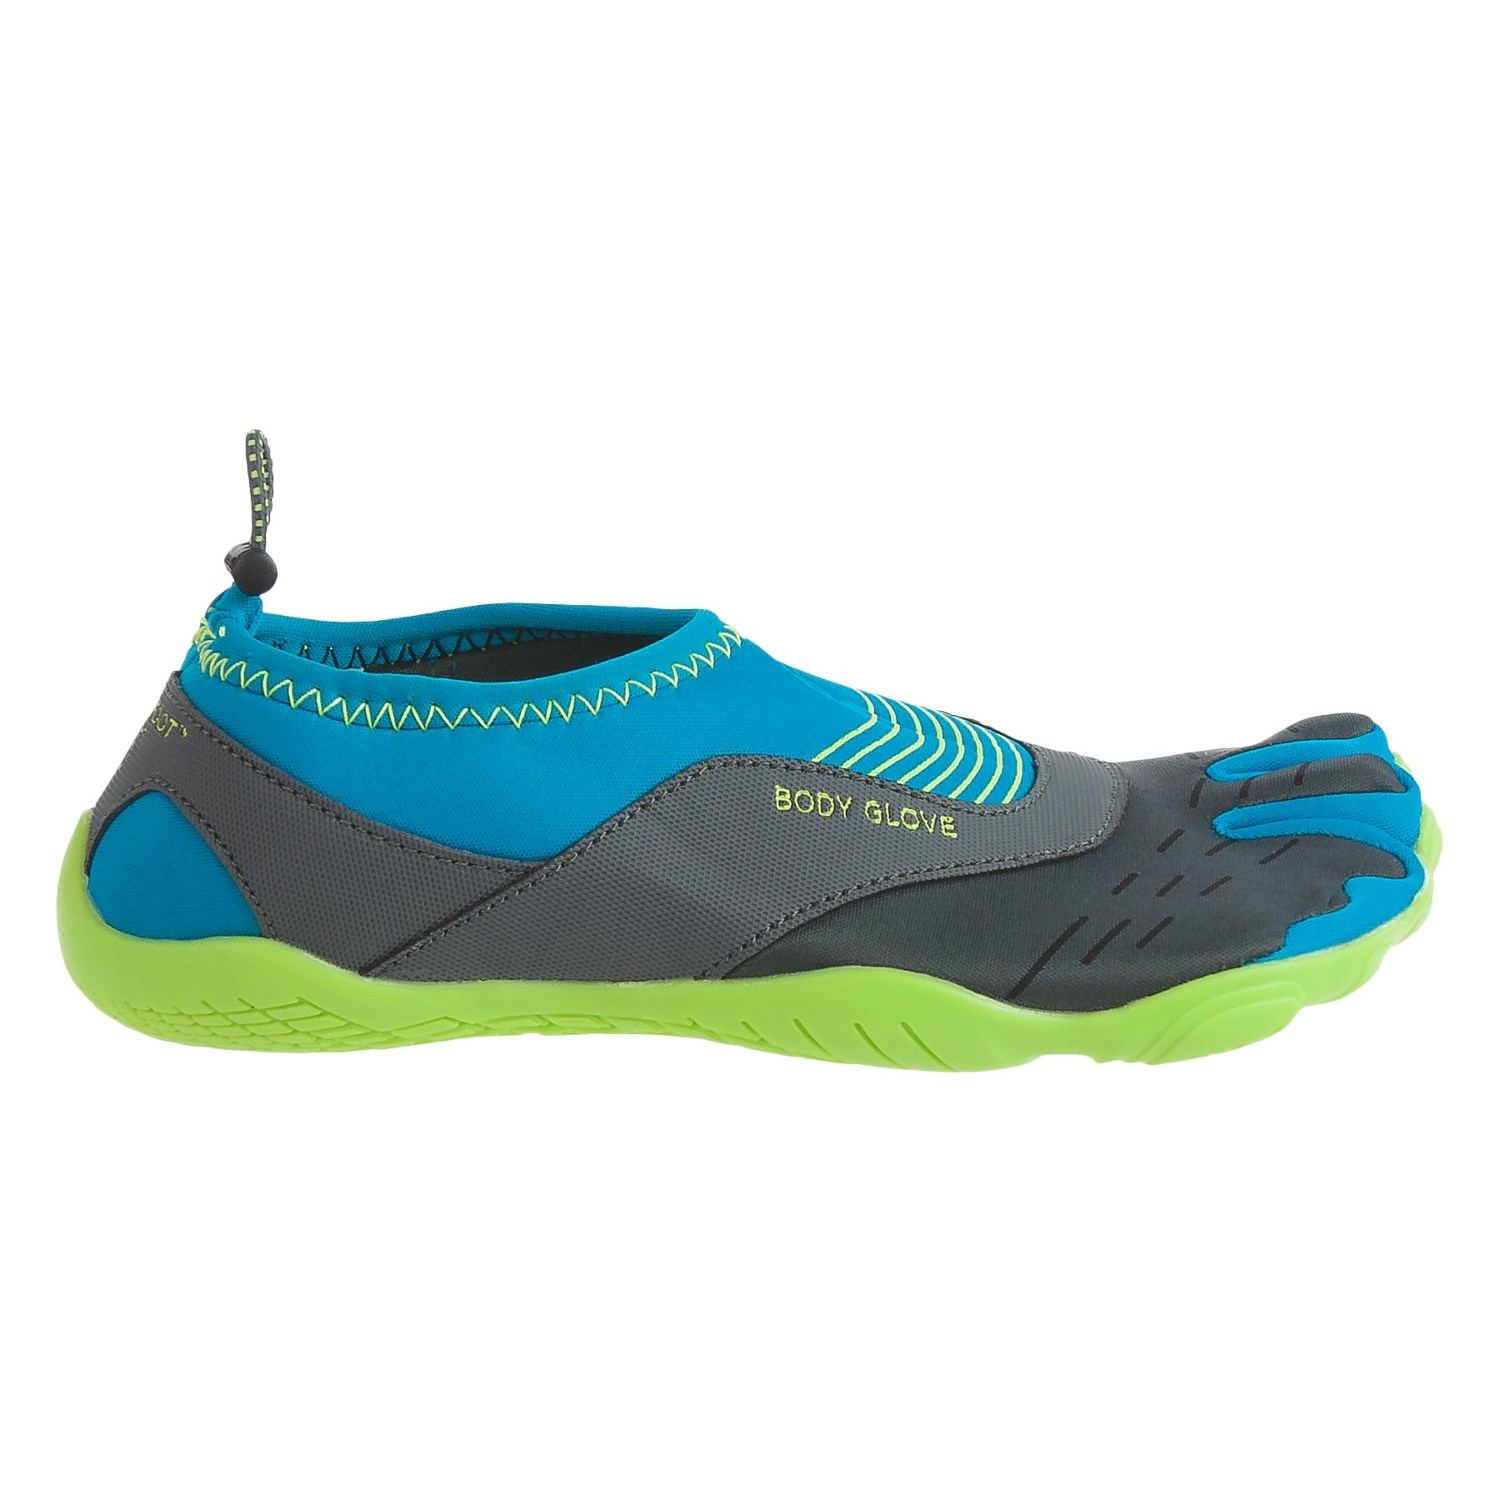 Body Glove Barefoot Shoes Review